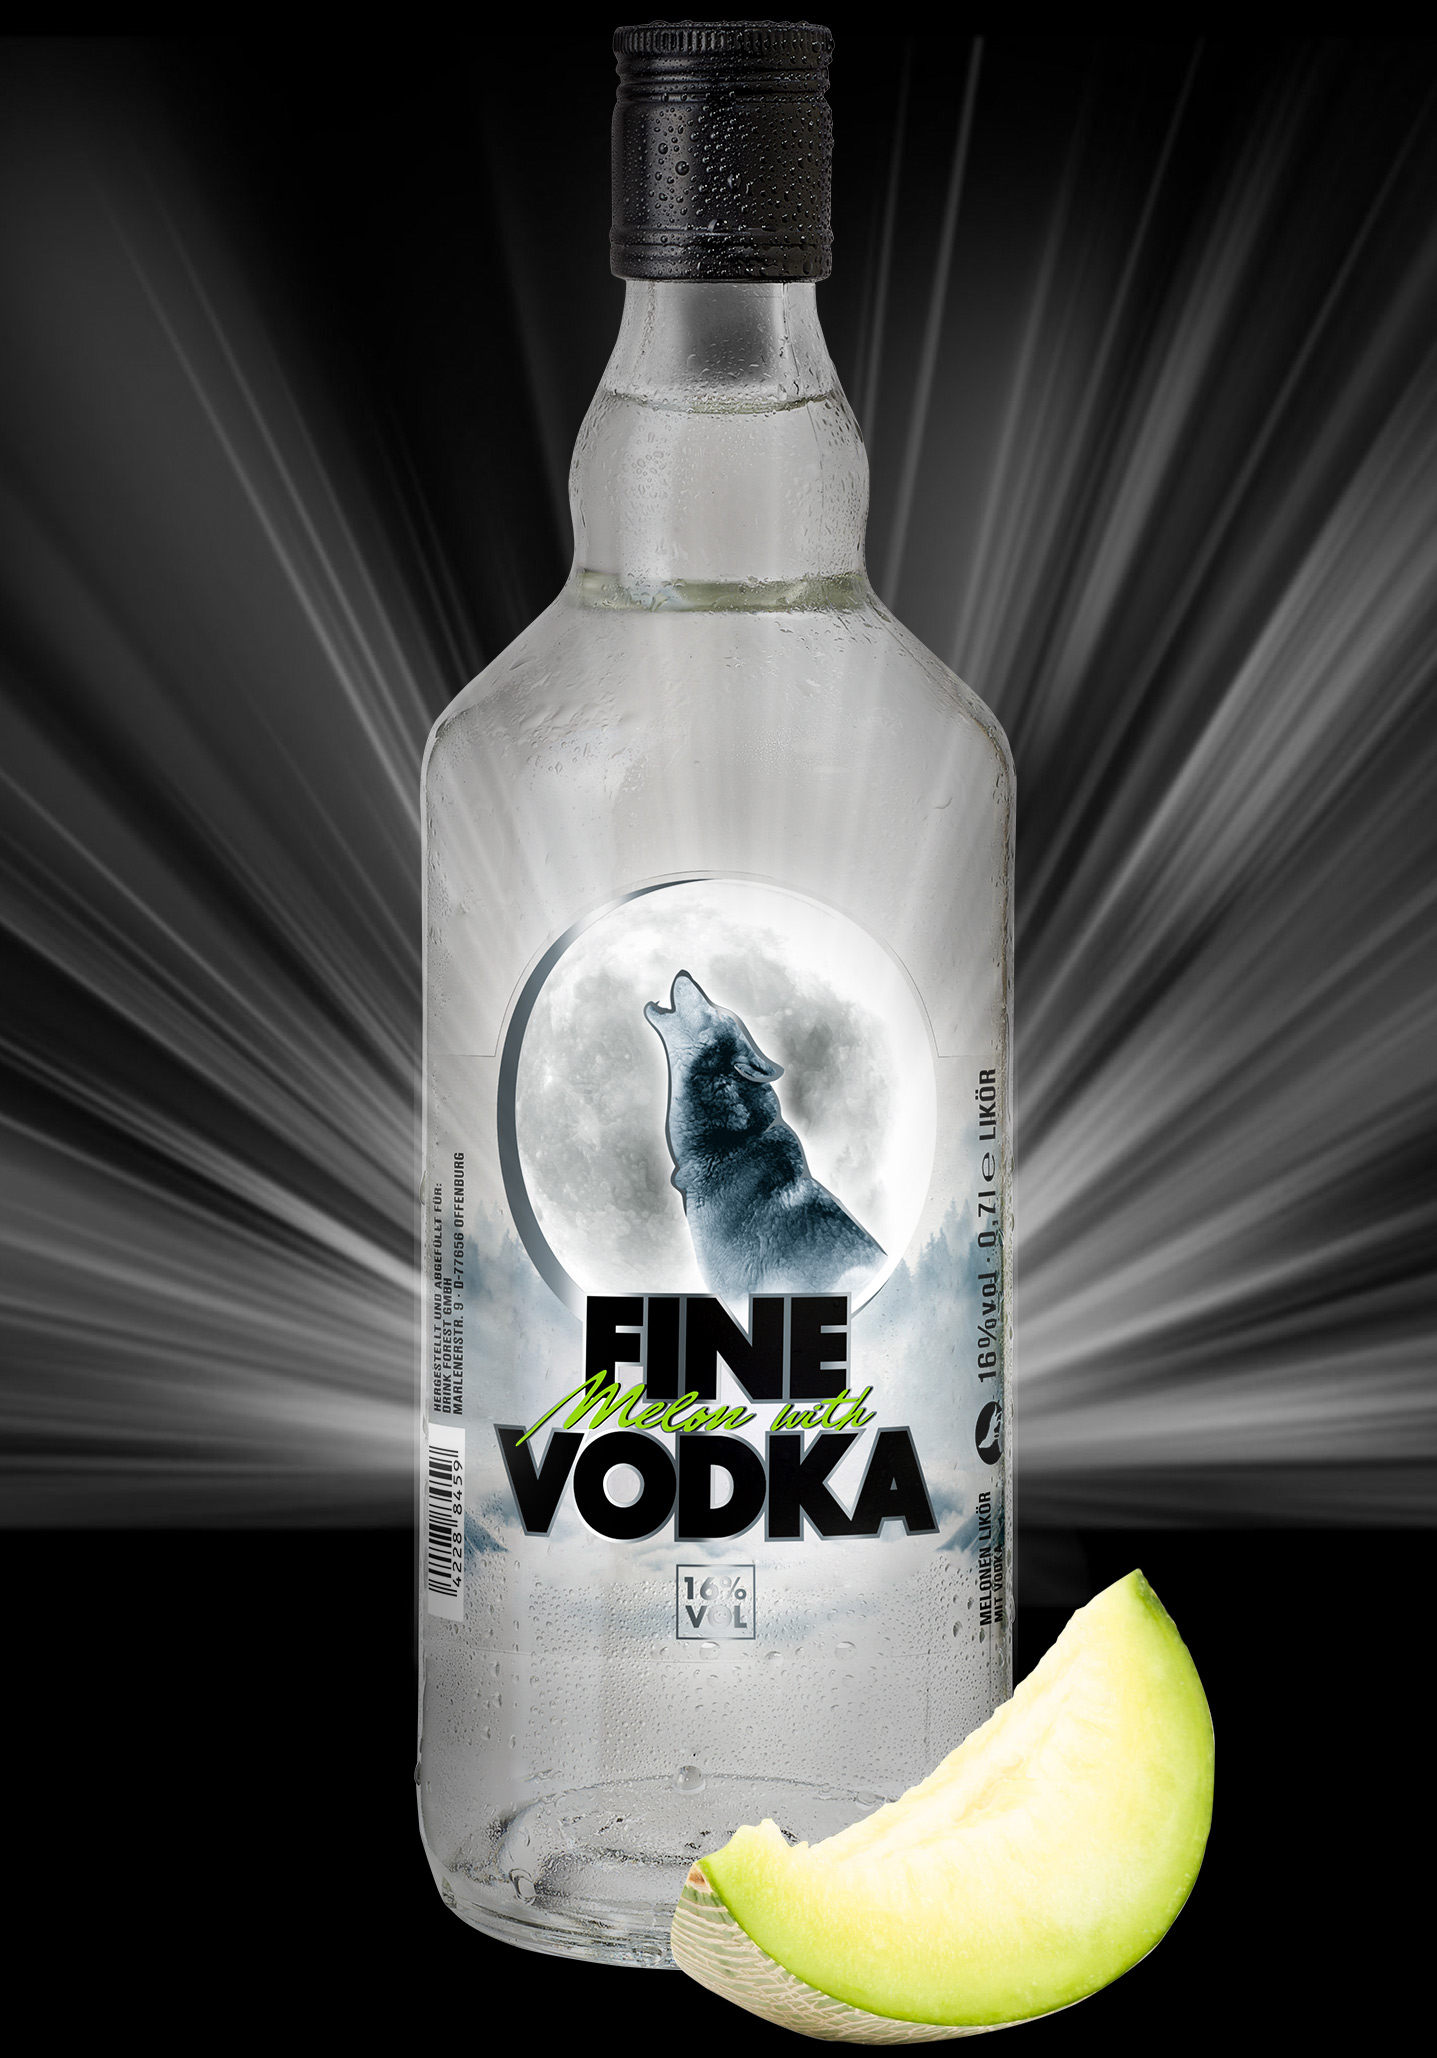 Fine Melon with Vodka Melonenvodka Happy End